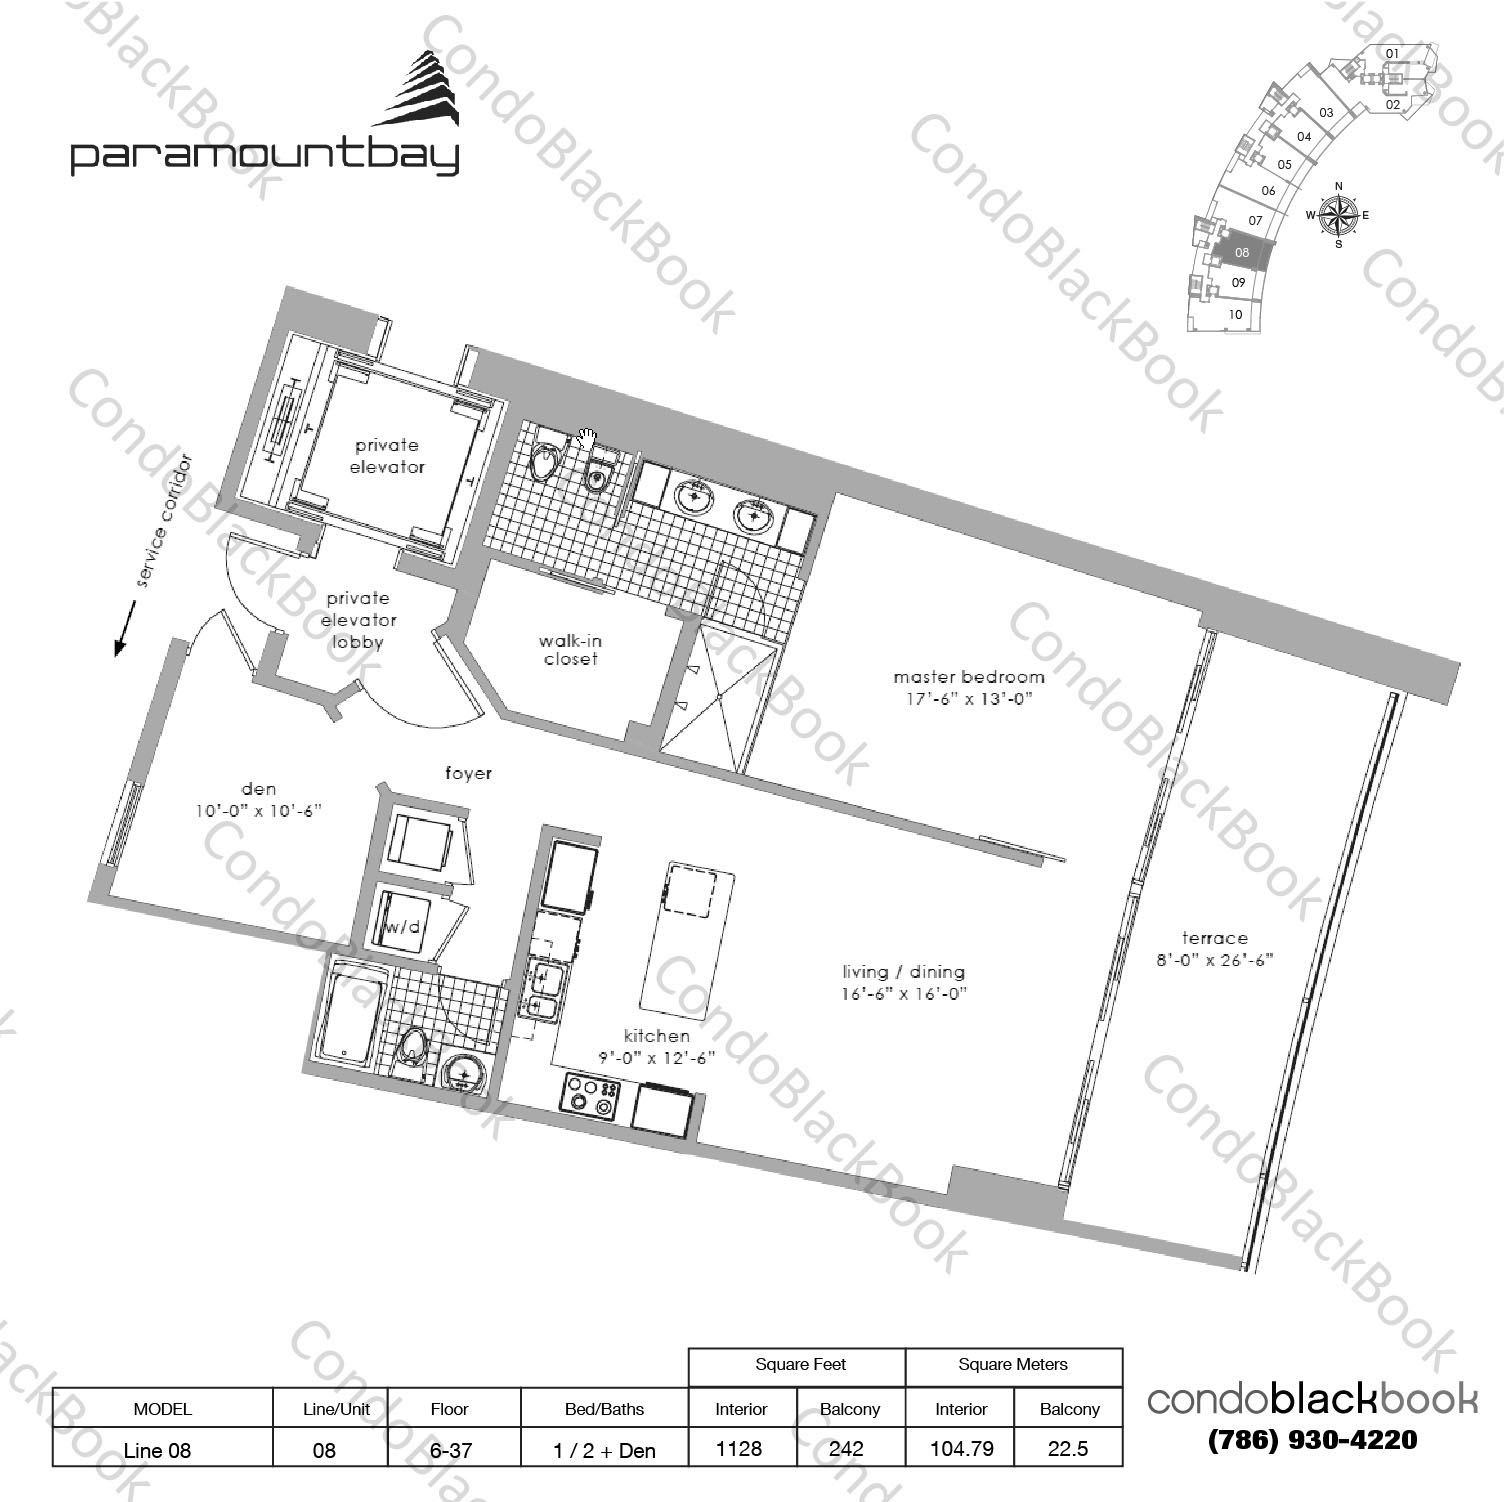 Paramount Bay Unit #1408 Condo For Sale In Edgewater